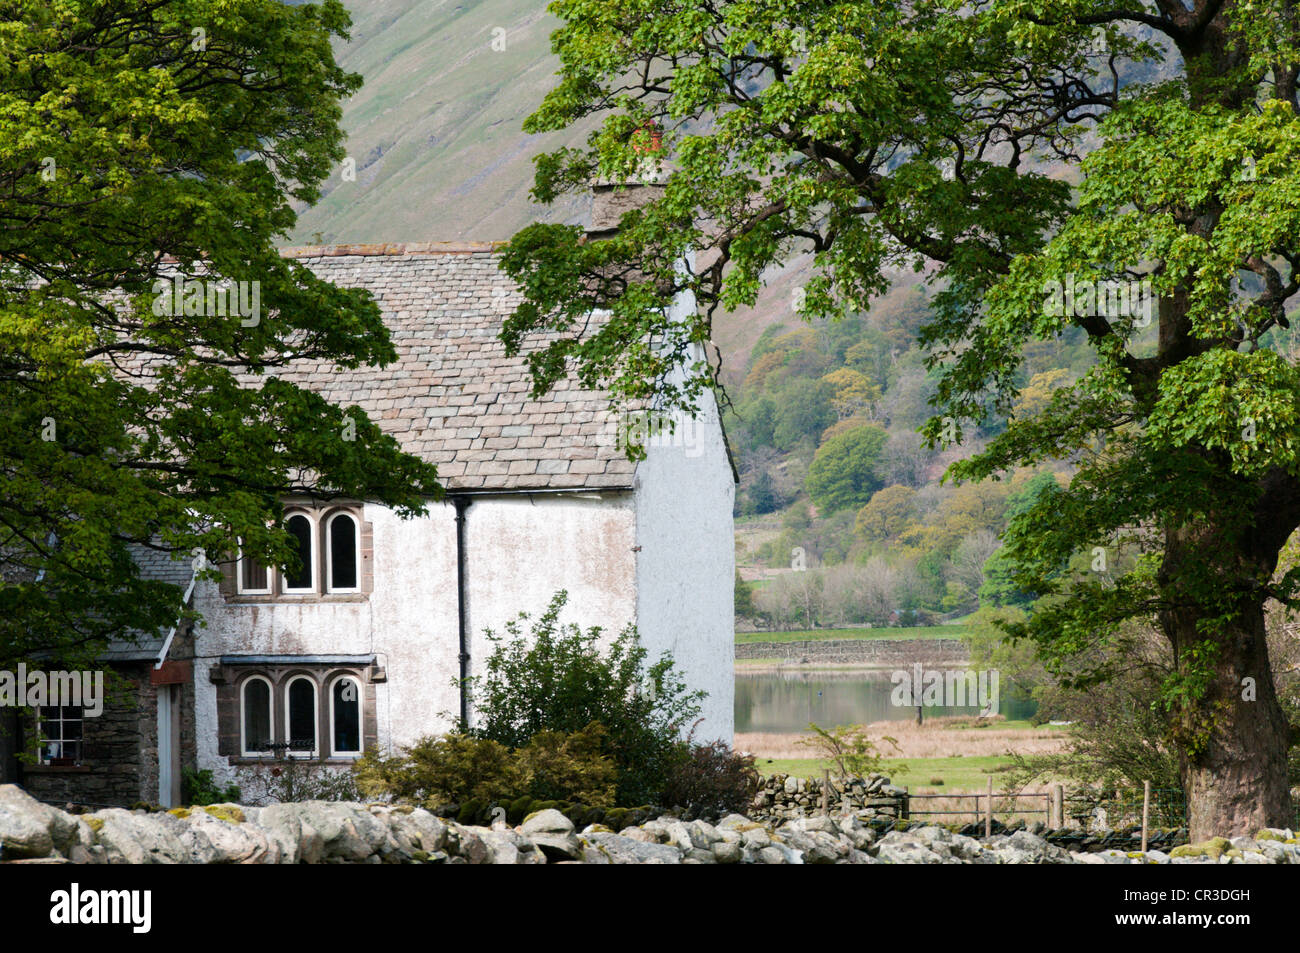 Hartsop Hall next to Brothers Water in the English Lake District. - Stock Image